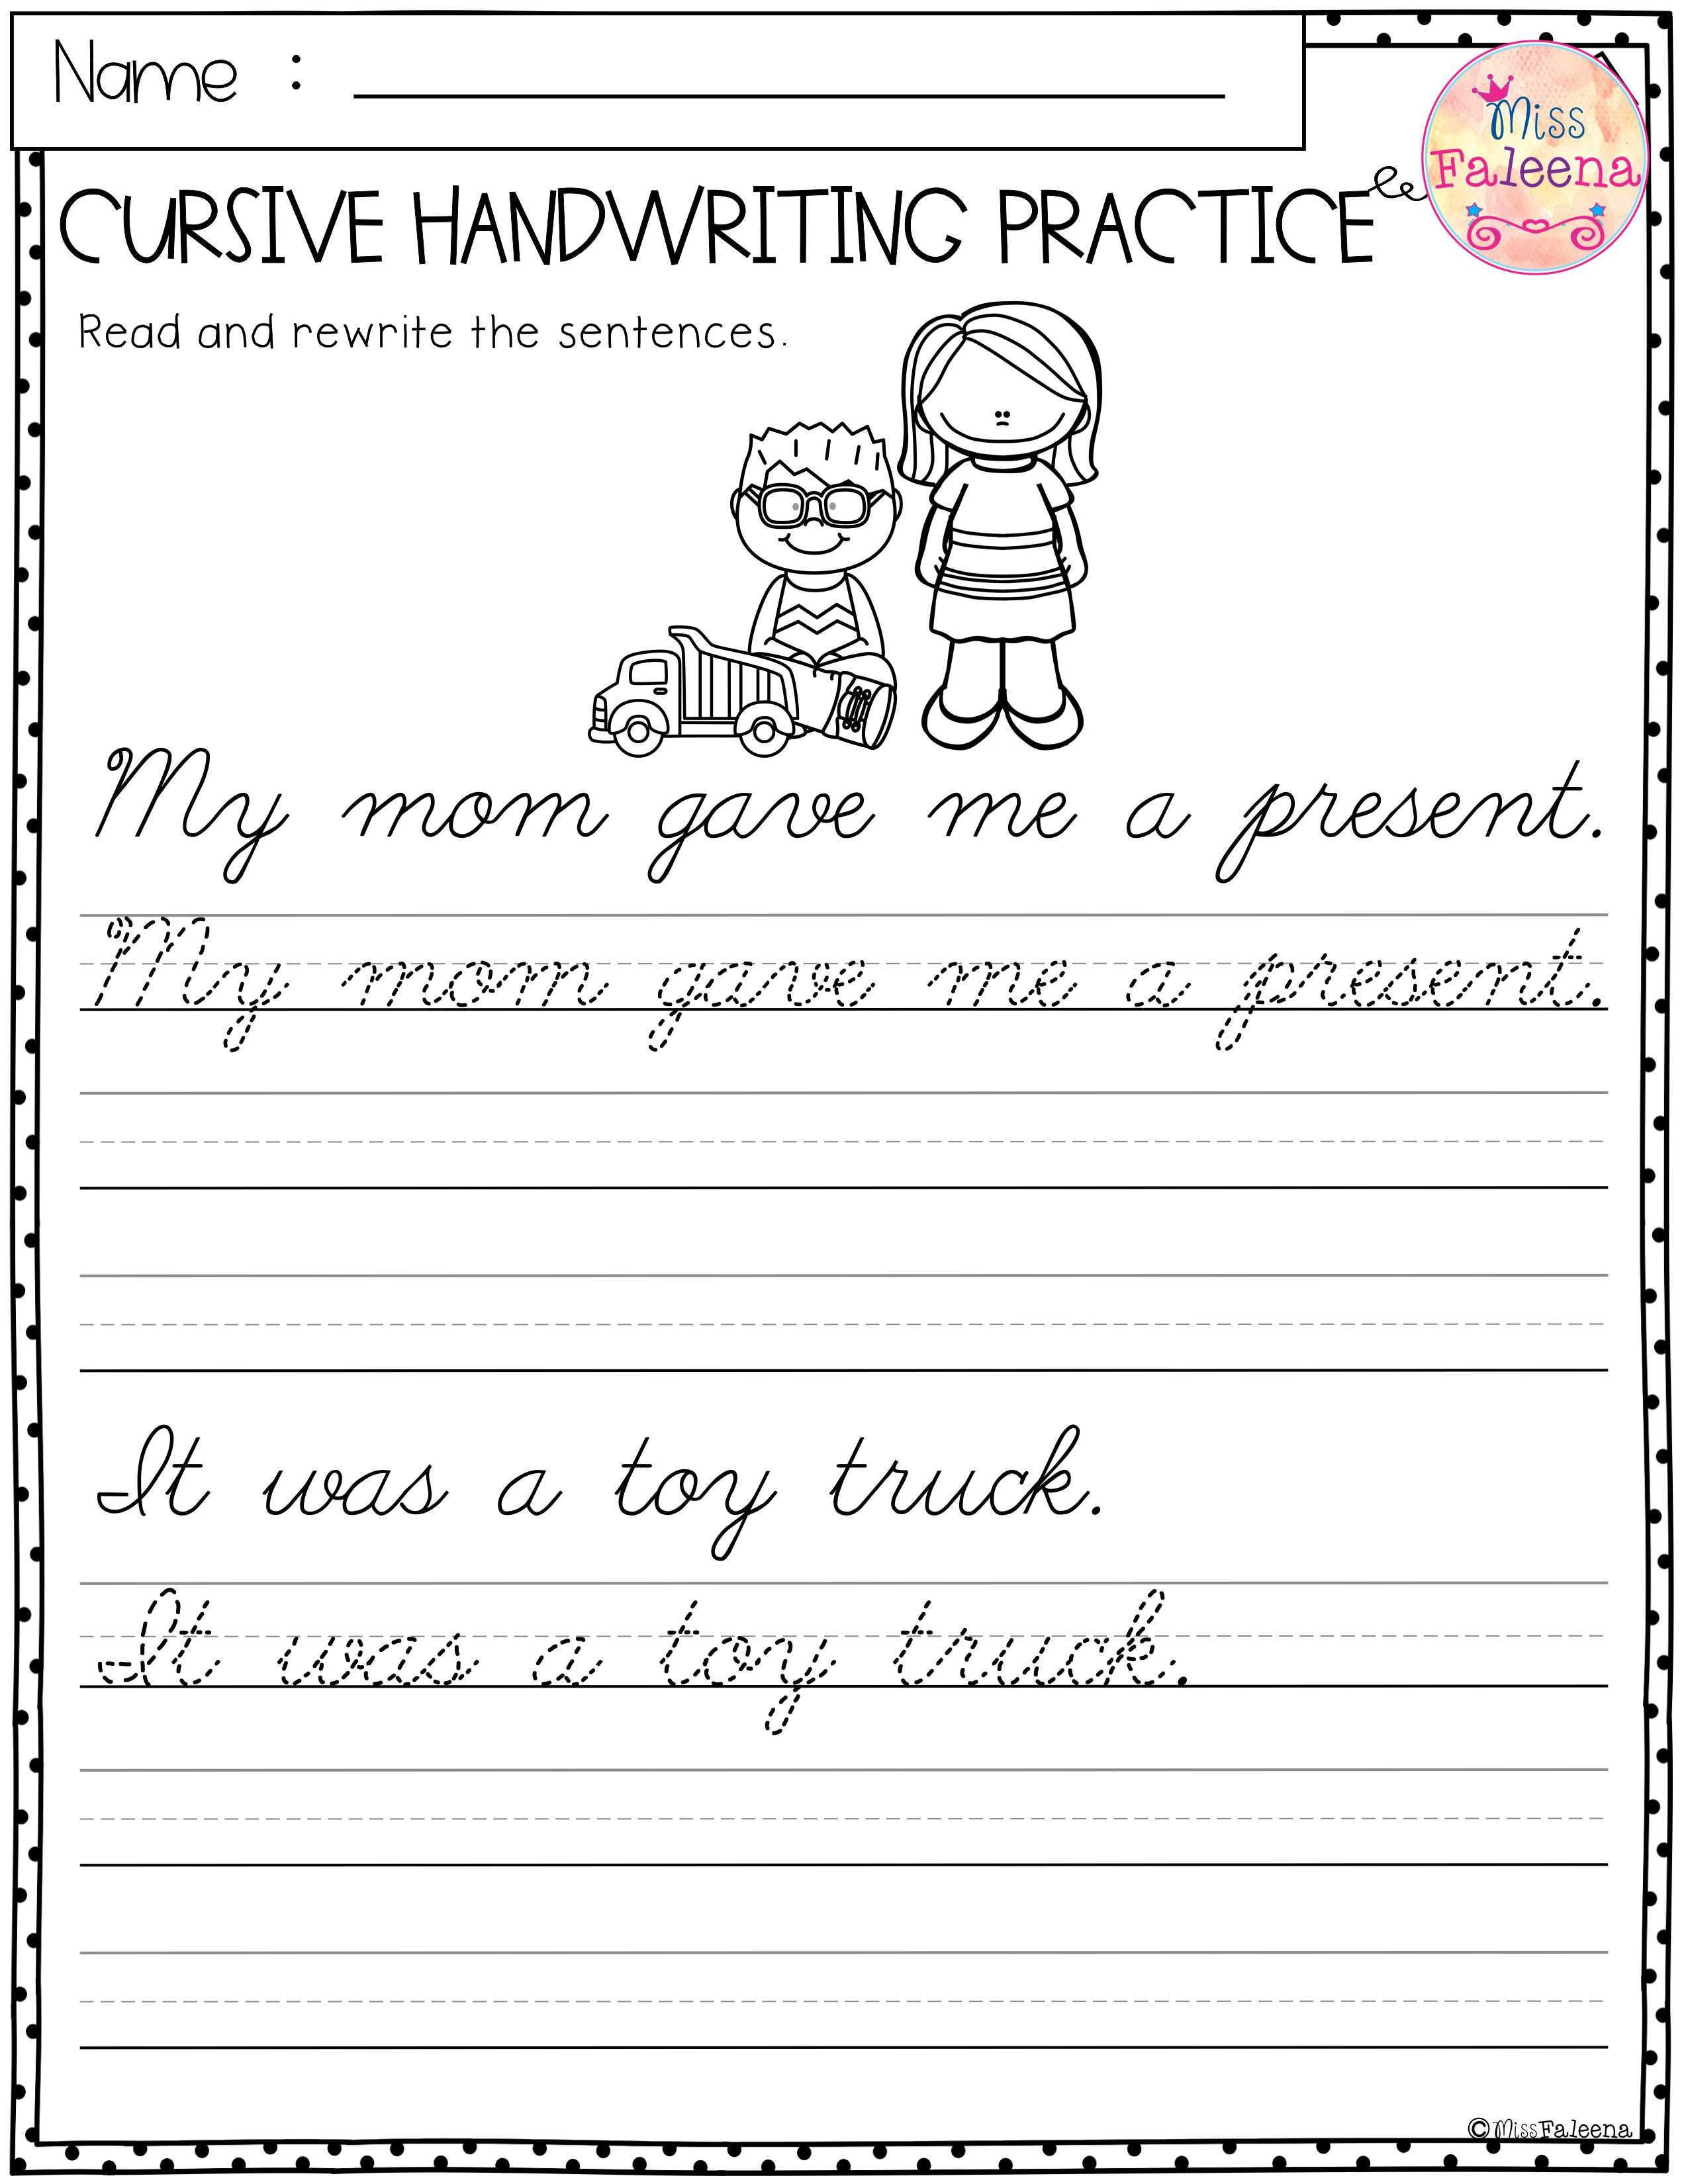 christmas cursive handwriting practice miss faleena 39 s store cursive handwriting practice. Black Bedroom Furniture Sets. Home Design Ideas